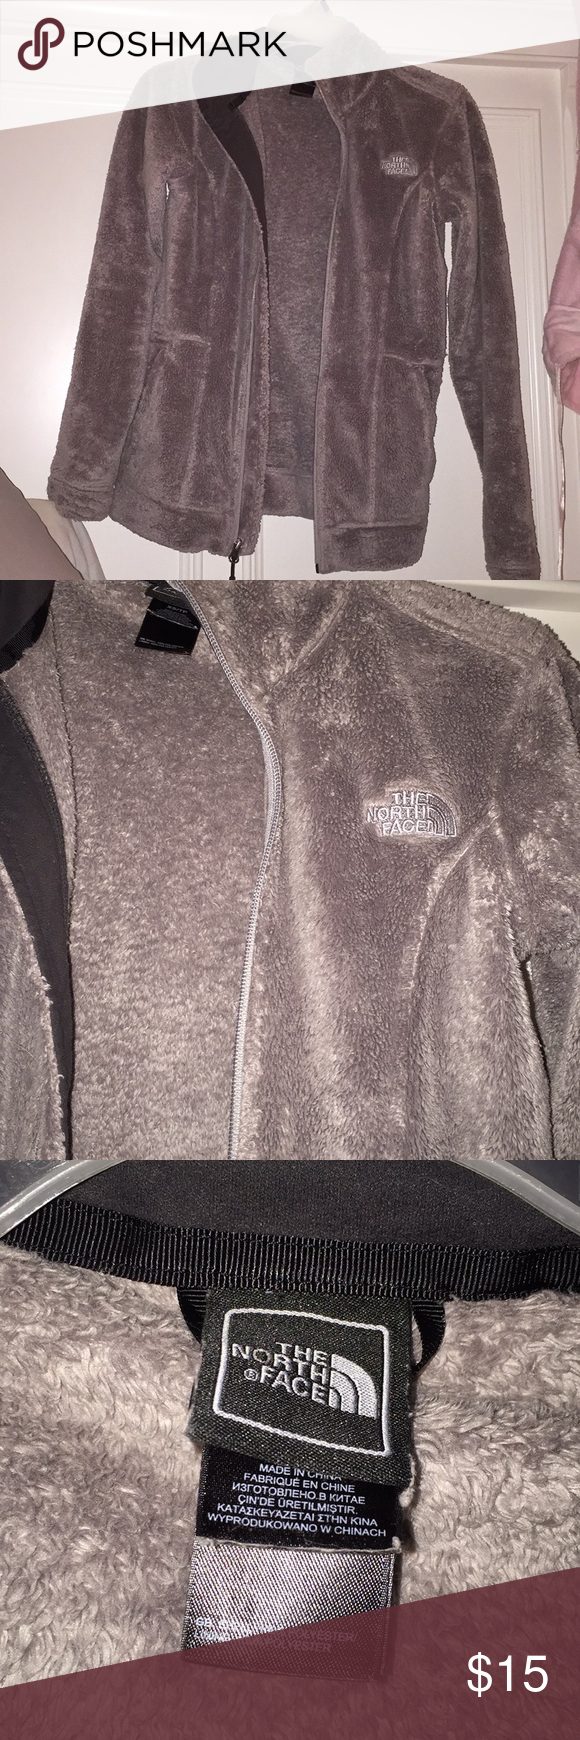 North Face Jacket The Fur Is Matted Down Due To Washing And Drying It Reflects Price Make An Offer The North Face North Face Jacket Clothes Design Fashion [ 1740 x 580 Pixel ]